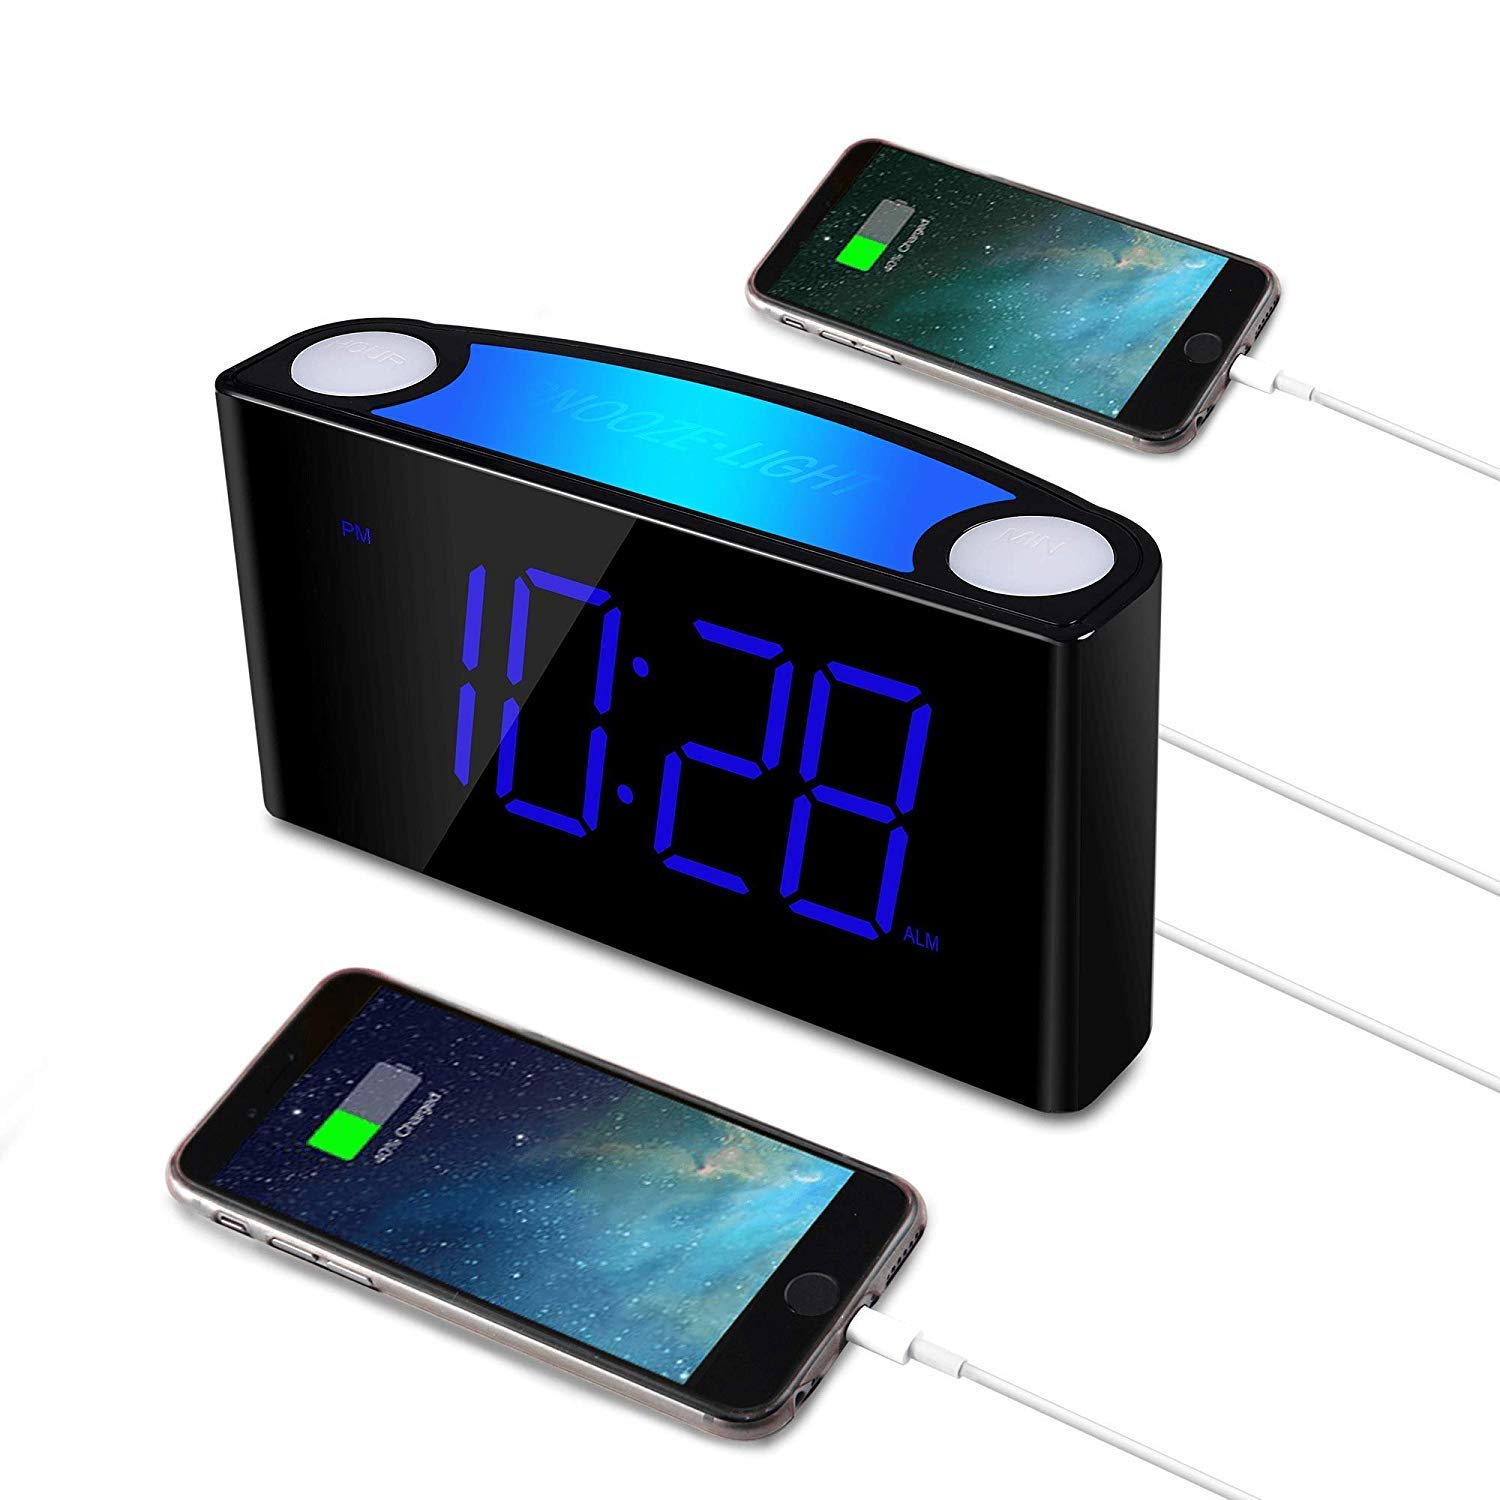 Alarm Clock for Heavy Sleepers,Raynic Loud Digital Alarm Clock with Bed Shaker,Dimmer,12/24H, DST,7